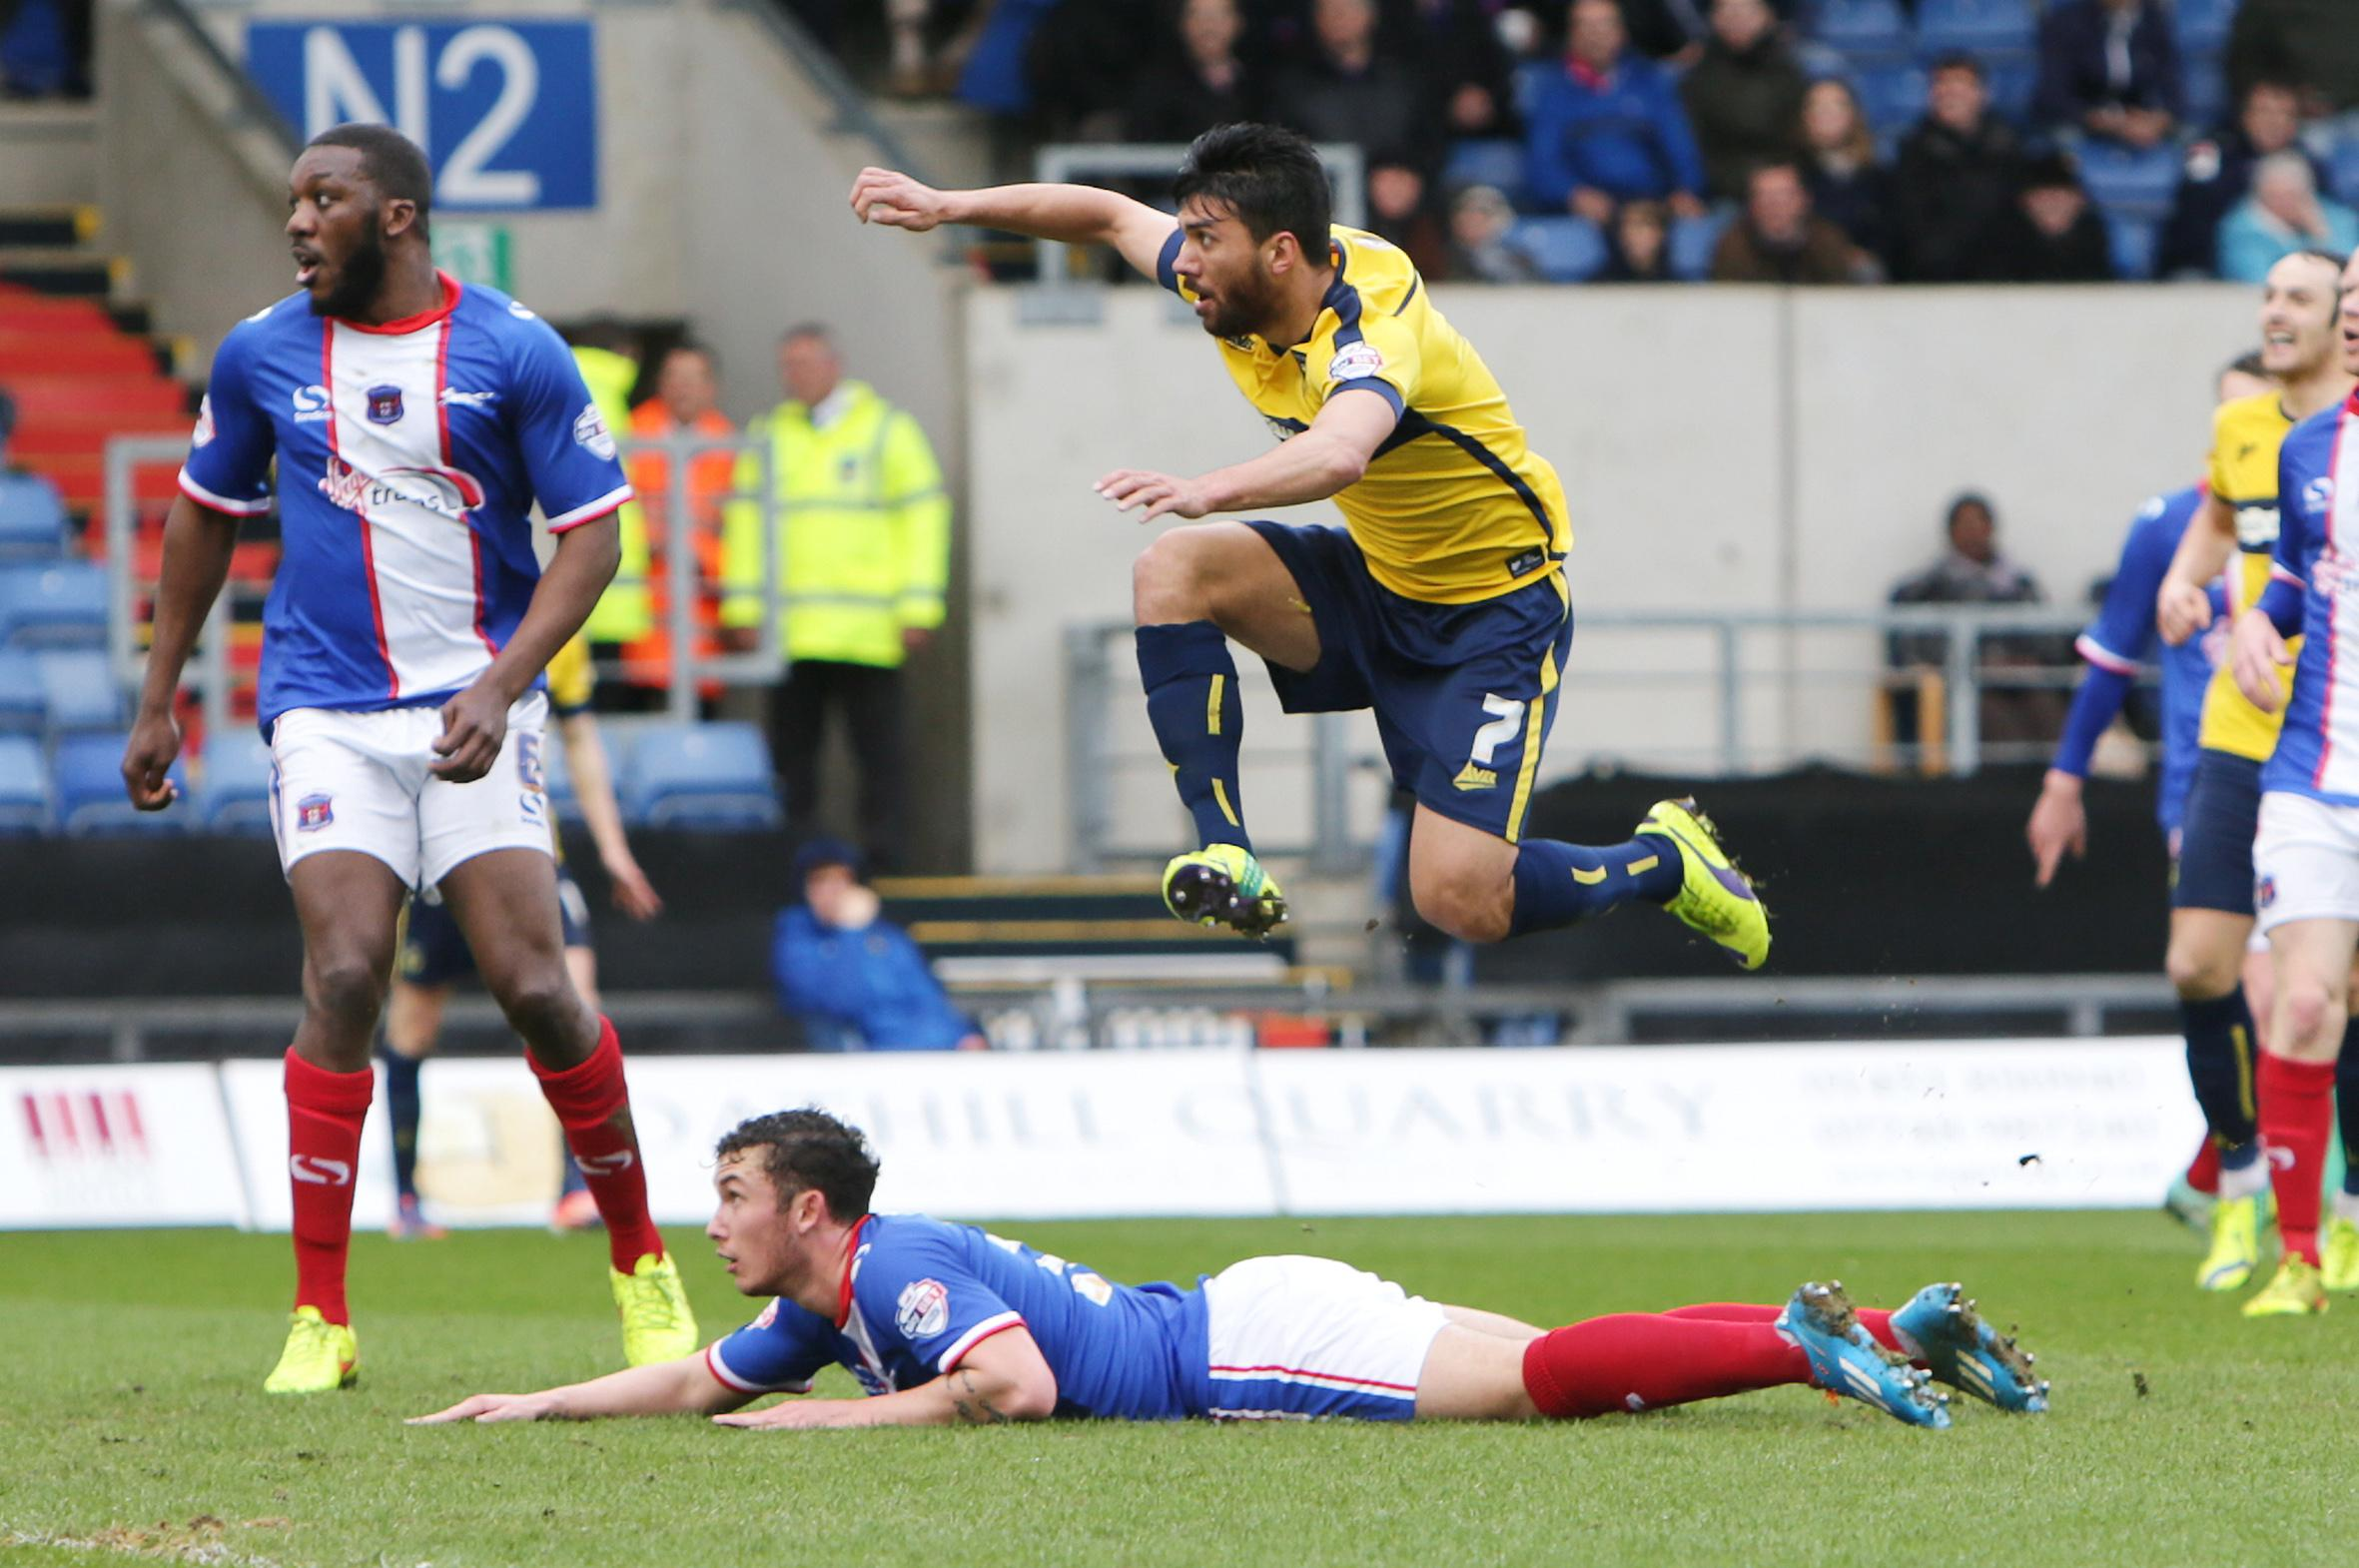 Oxford United midfielder Danny Rose is airborne as he fires in a shot which hits the underside of the bar and bounces clear to safety